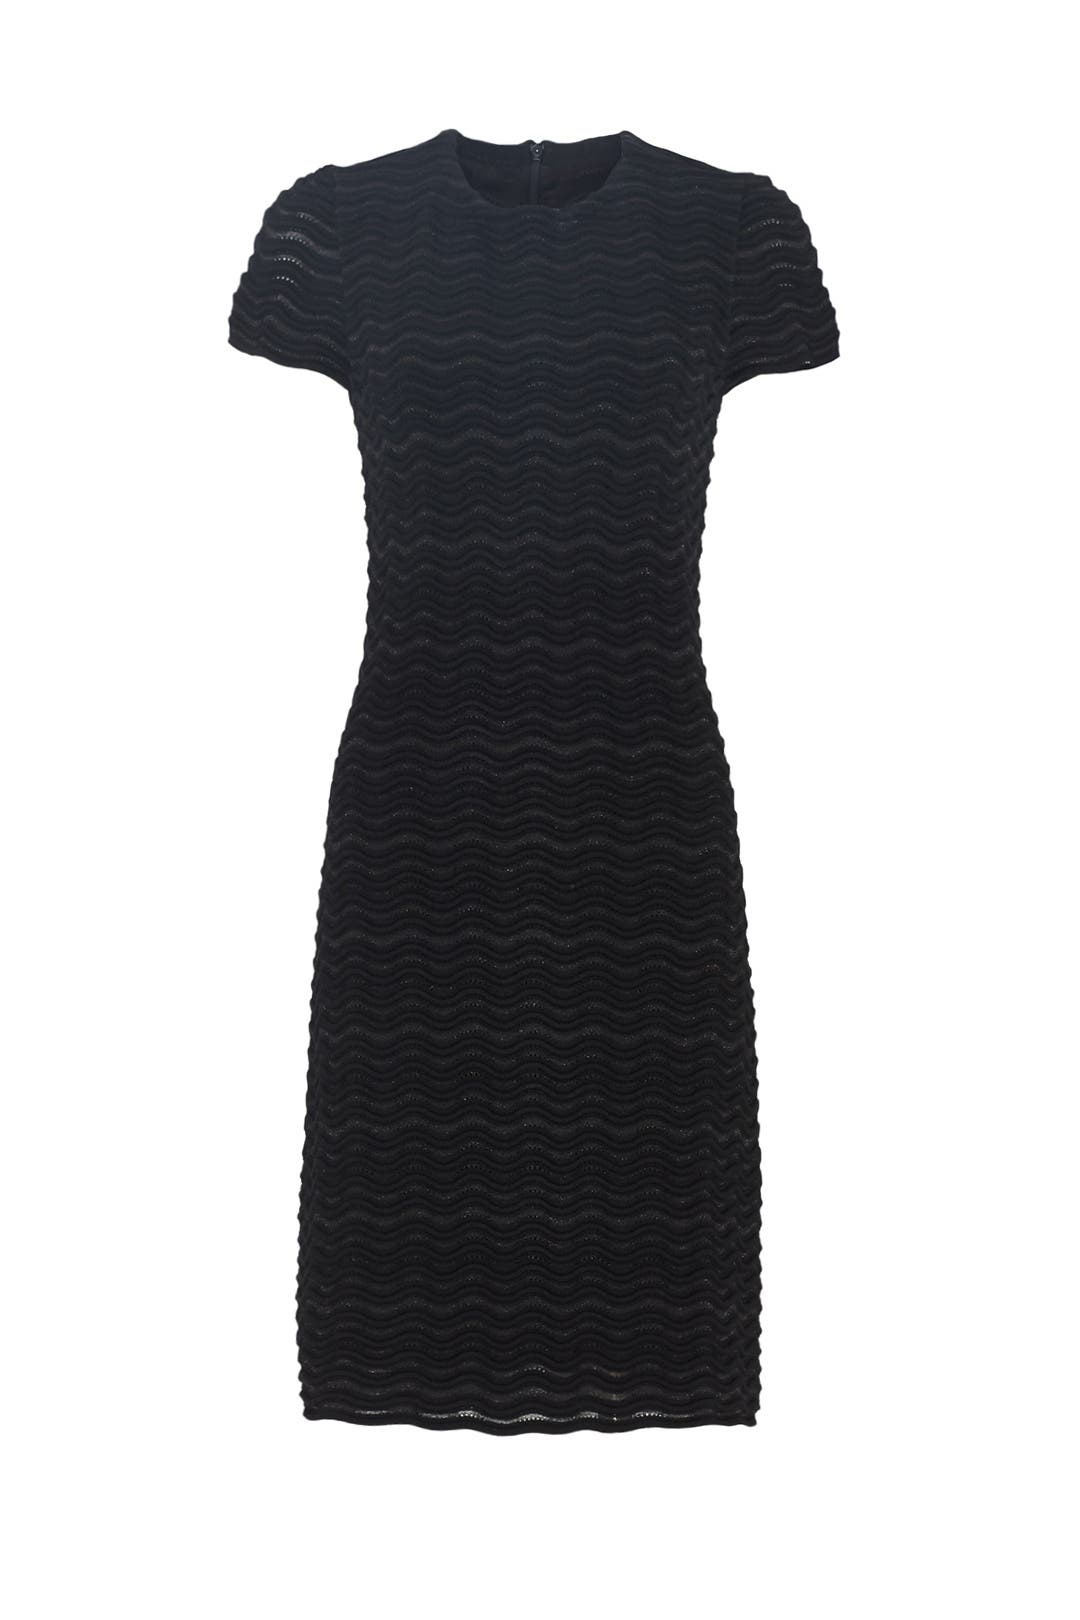 a5a5bbbbb5c4 Lurex Fitted Dress by Tory Burch for $70 | Rent the Runway